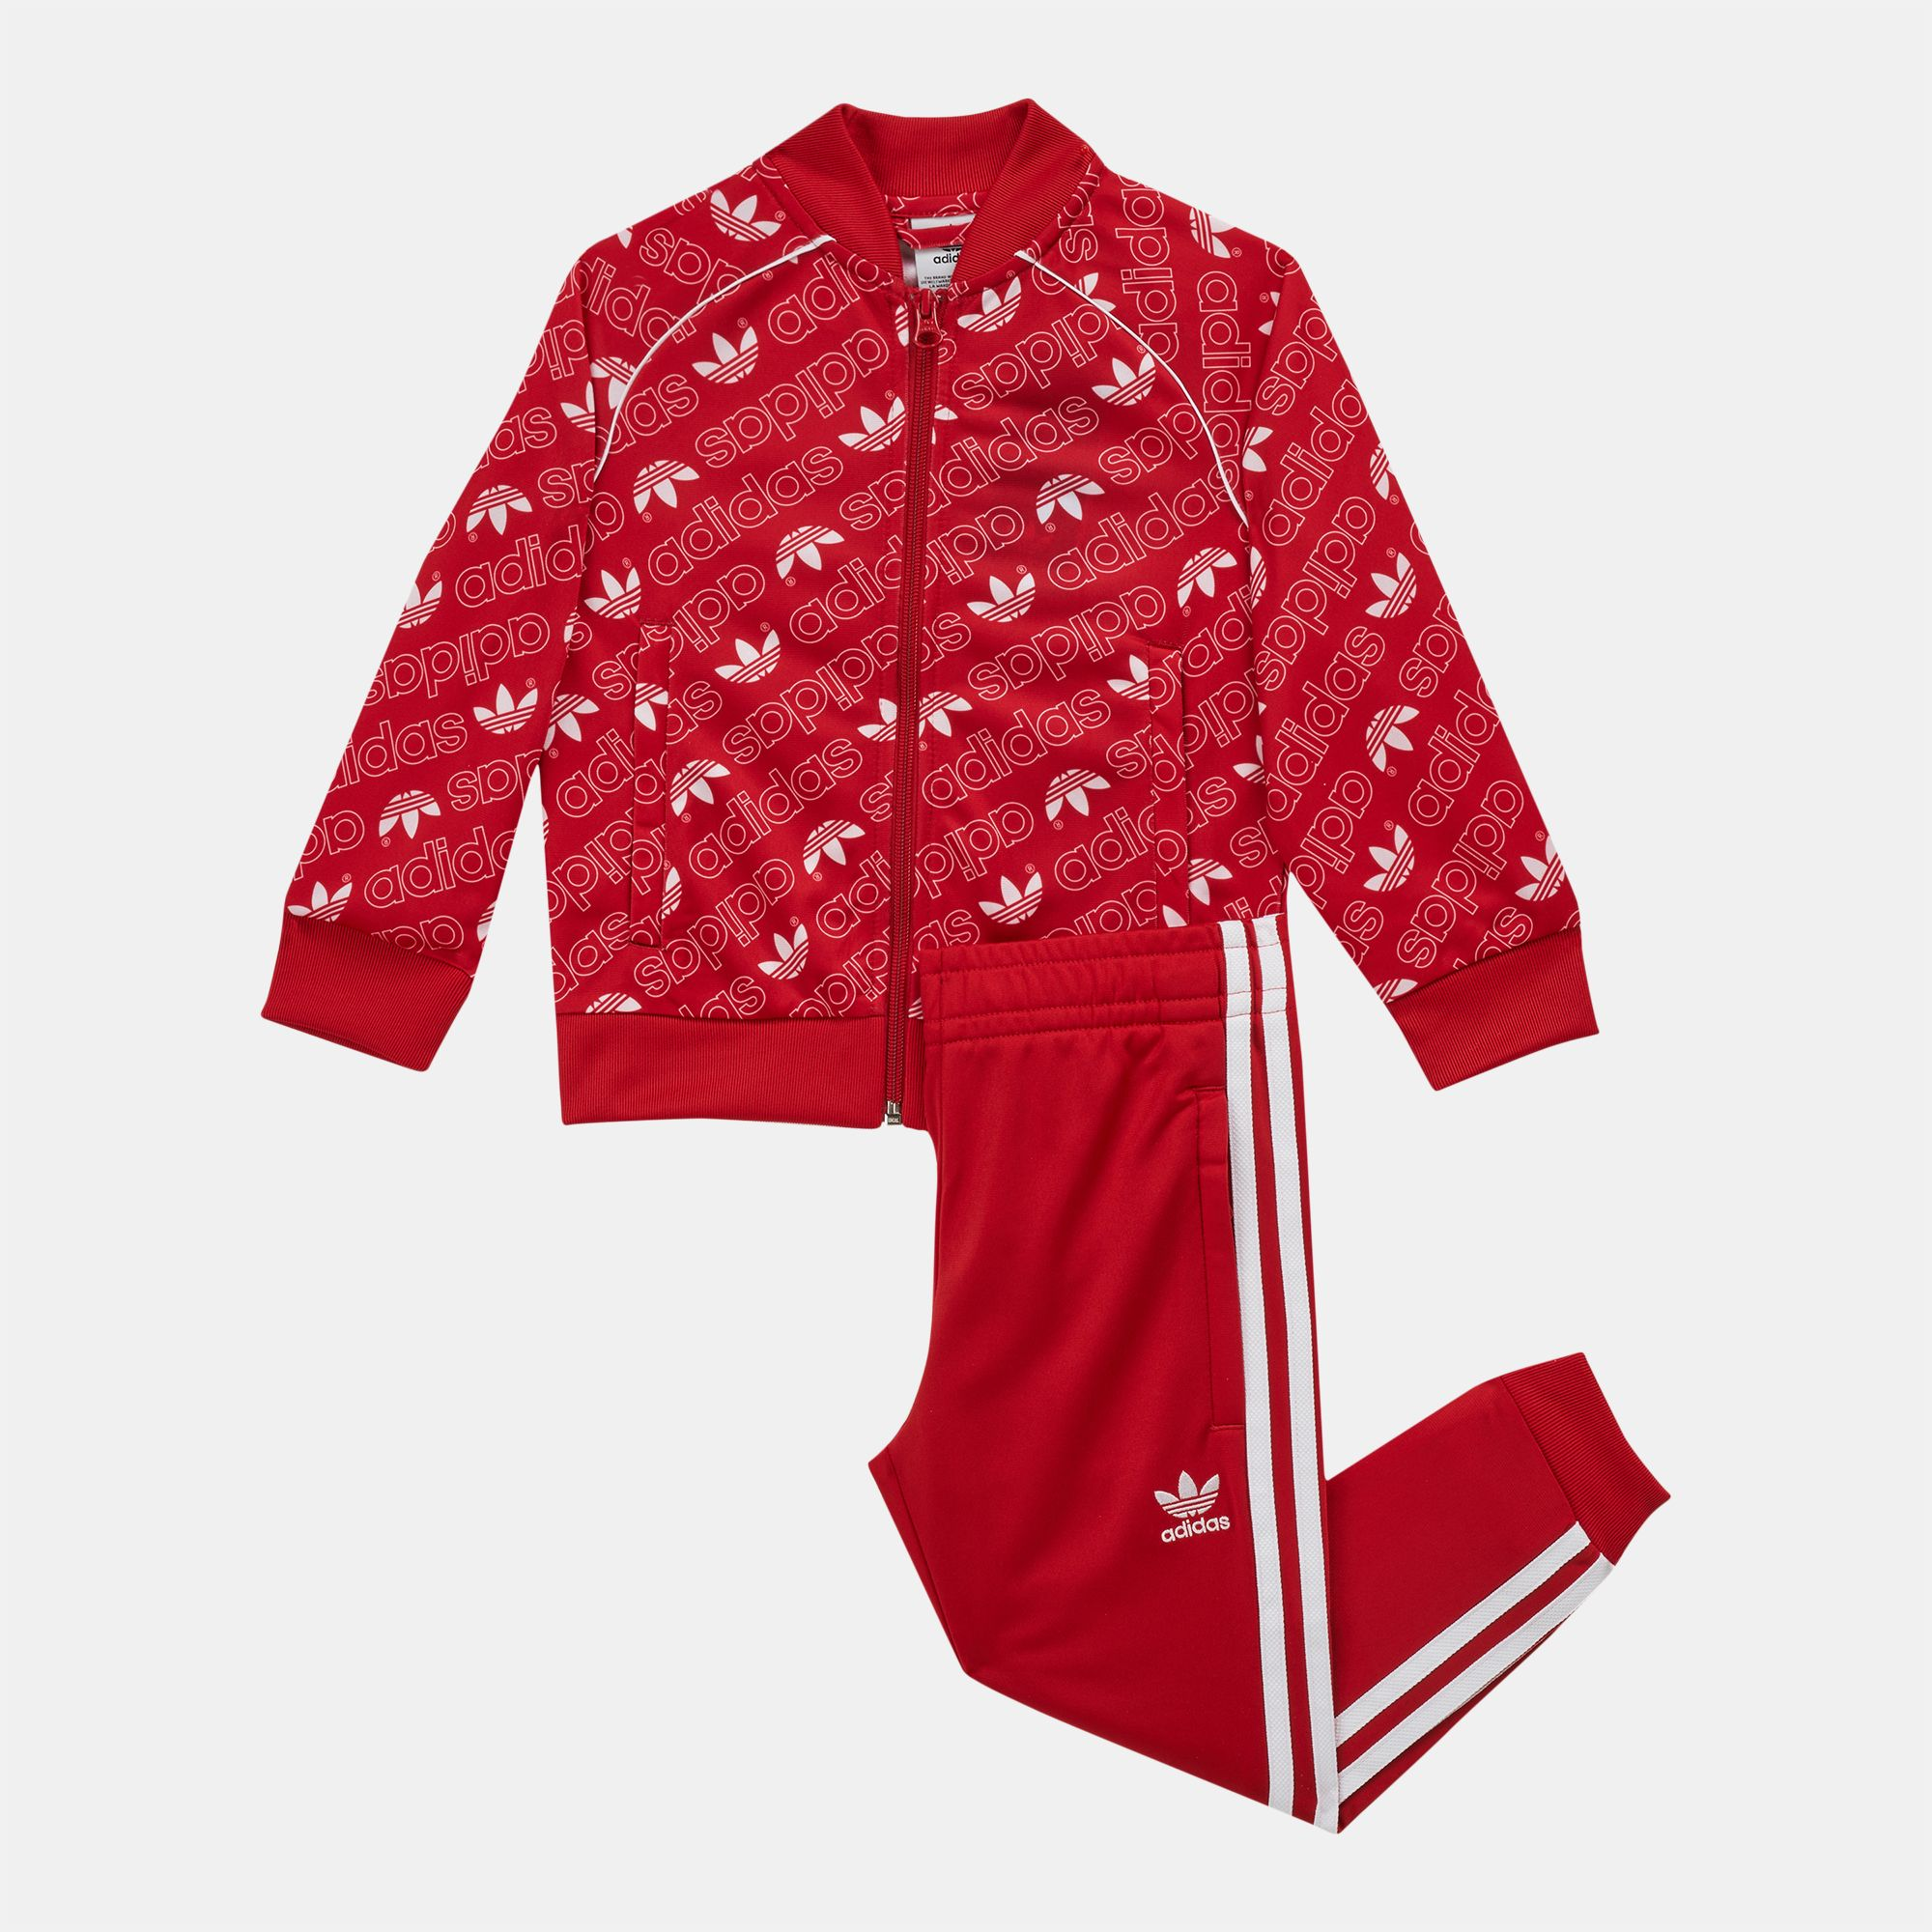 61a5080ec5e Shop Red adidas Originals Kids' Monogram Trefoil SST Tracksuit ...